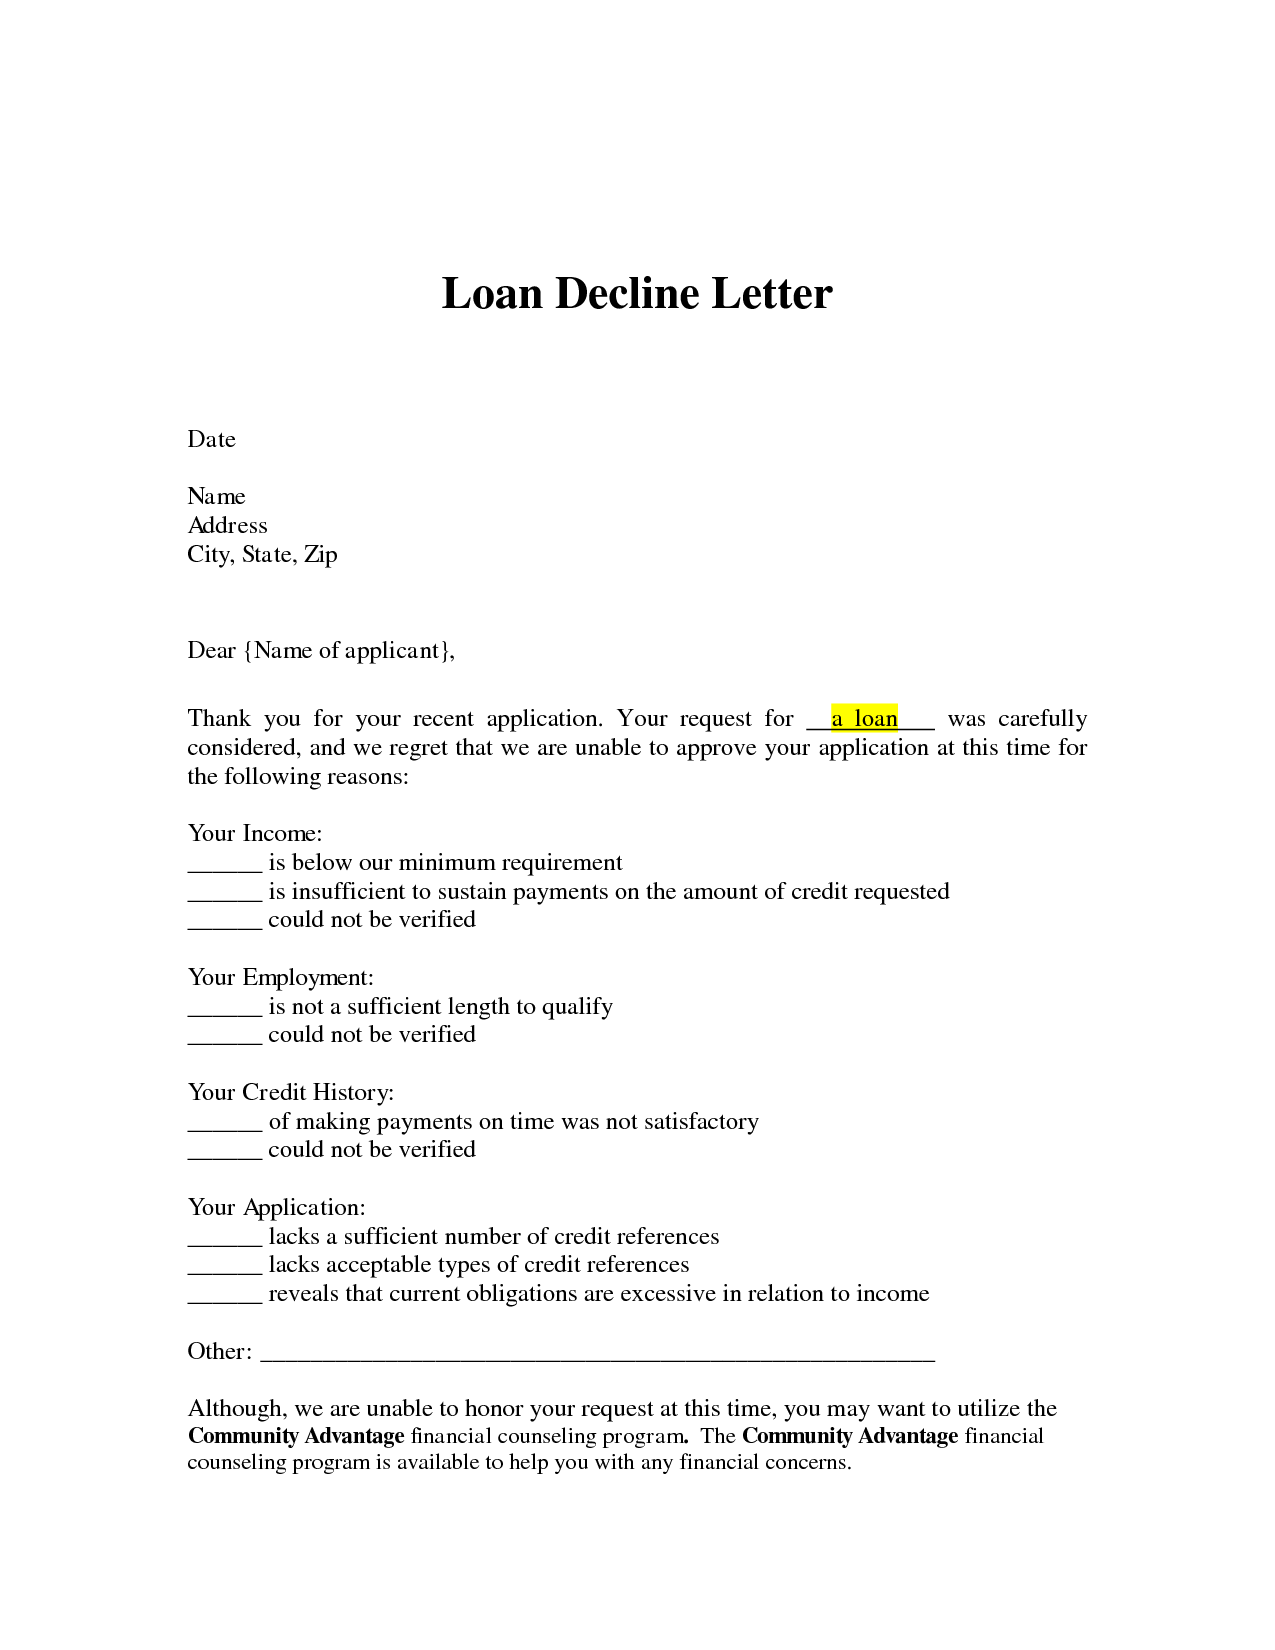 17 best images about decline letters letter sample 17 best images about decline letters letter sample other and interview